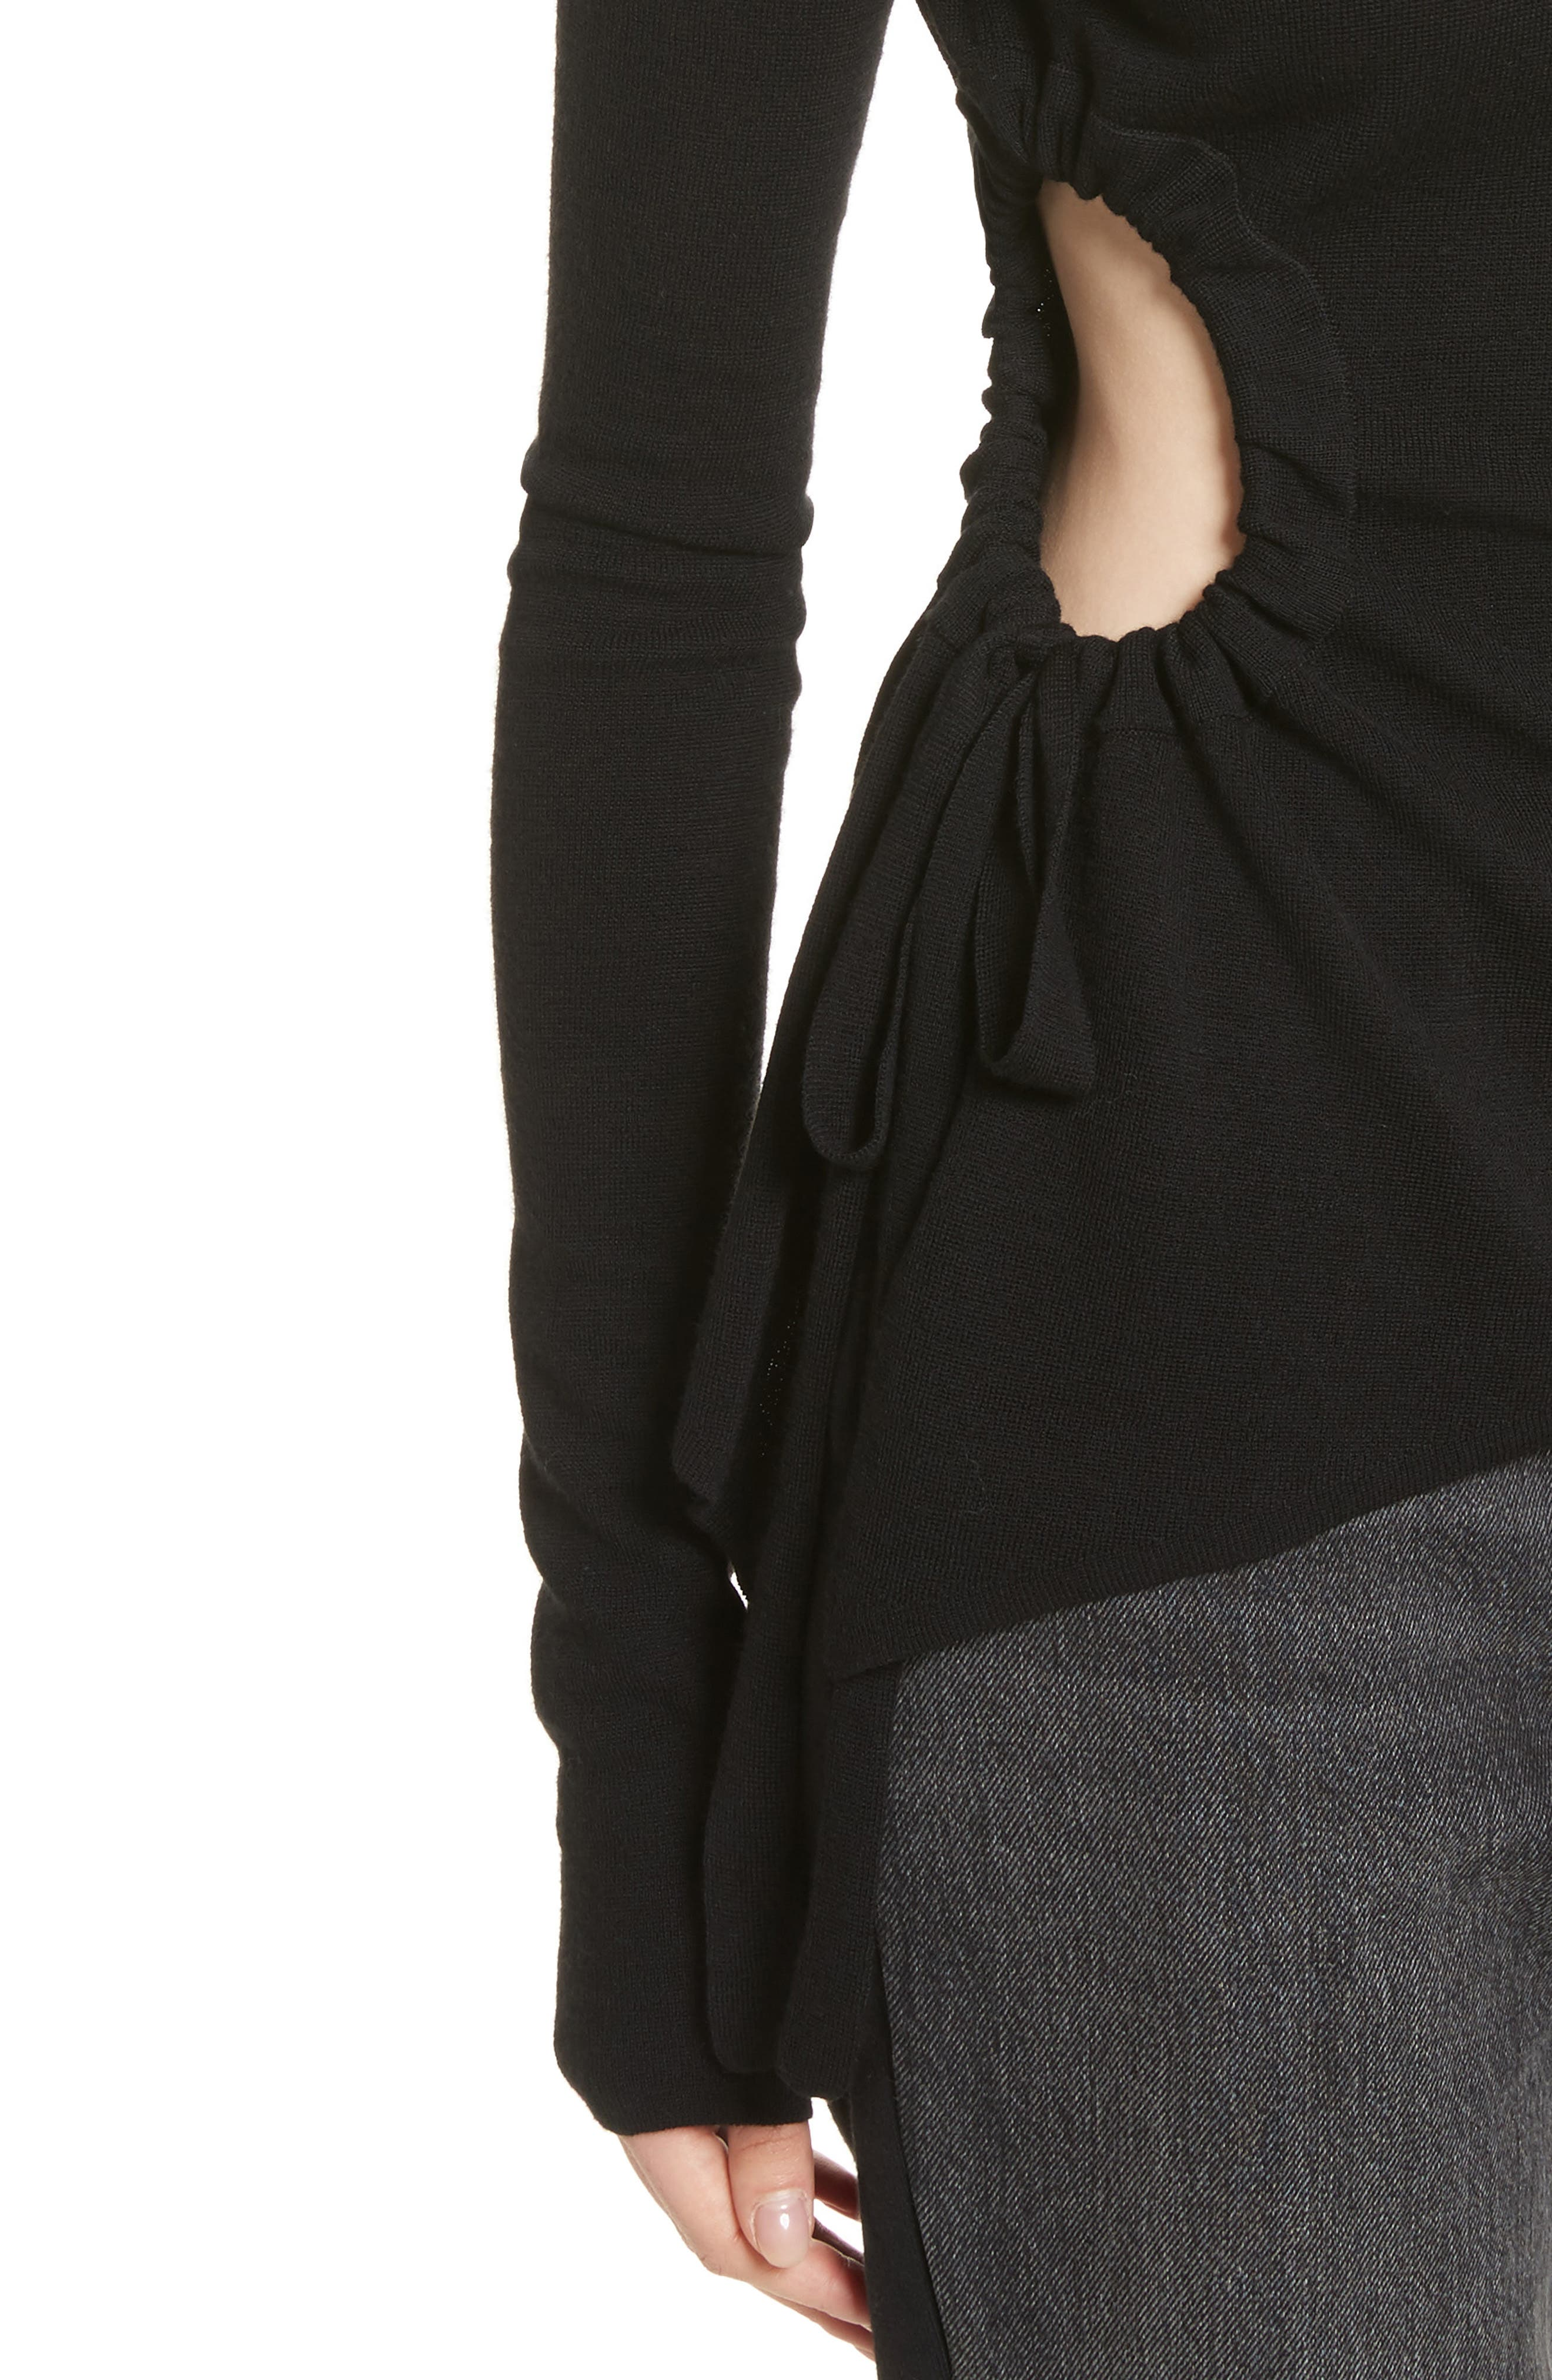 T by Alexander Side Cutout Ruched Merino Wool Sweater,                             Alternate thumbnail 4, color,                             Black